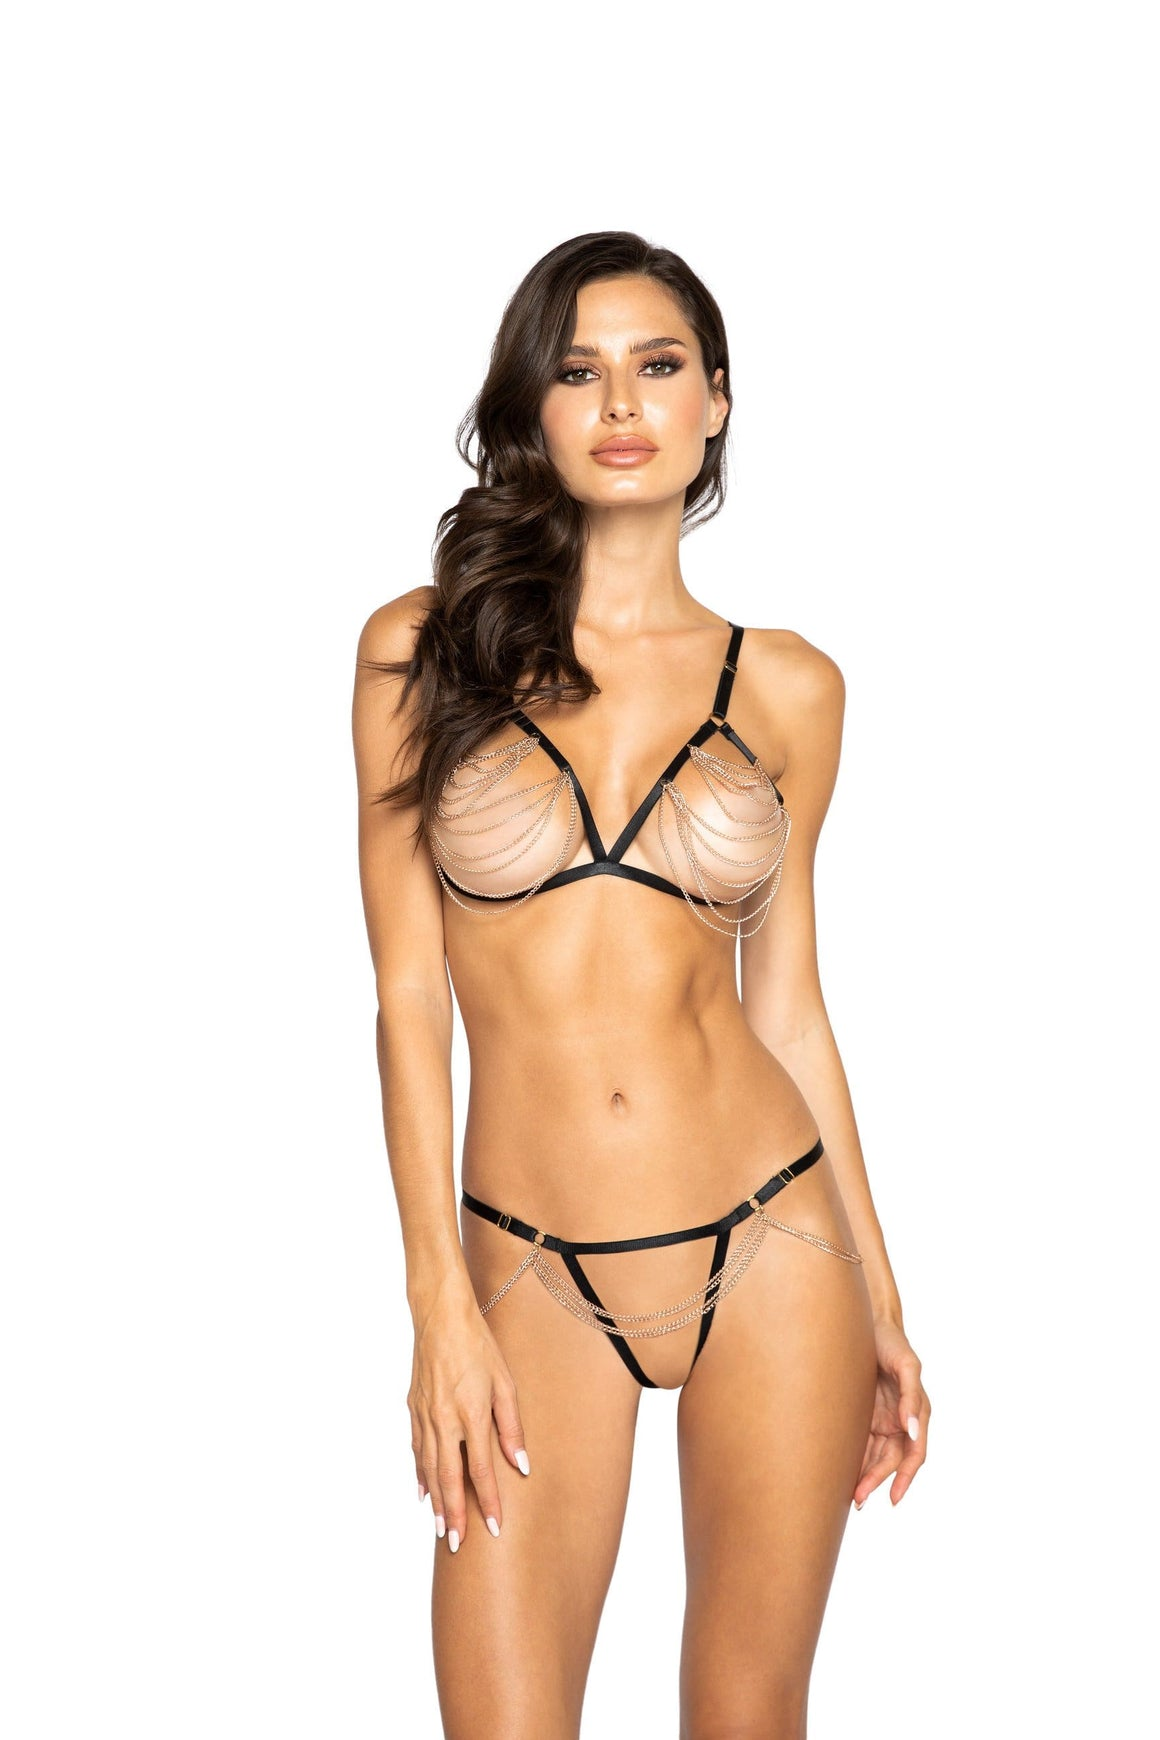 Roma Black/Gold Open Bra & Thong Chained Lingerie Set Apparel & Accessories > Clothing > One Pieces > Jumpsuits & Rompers